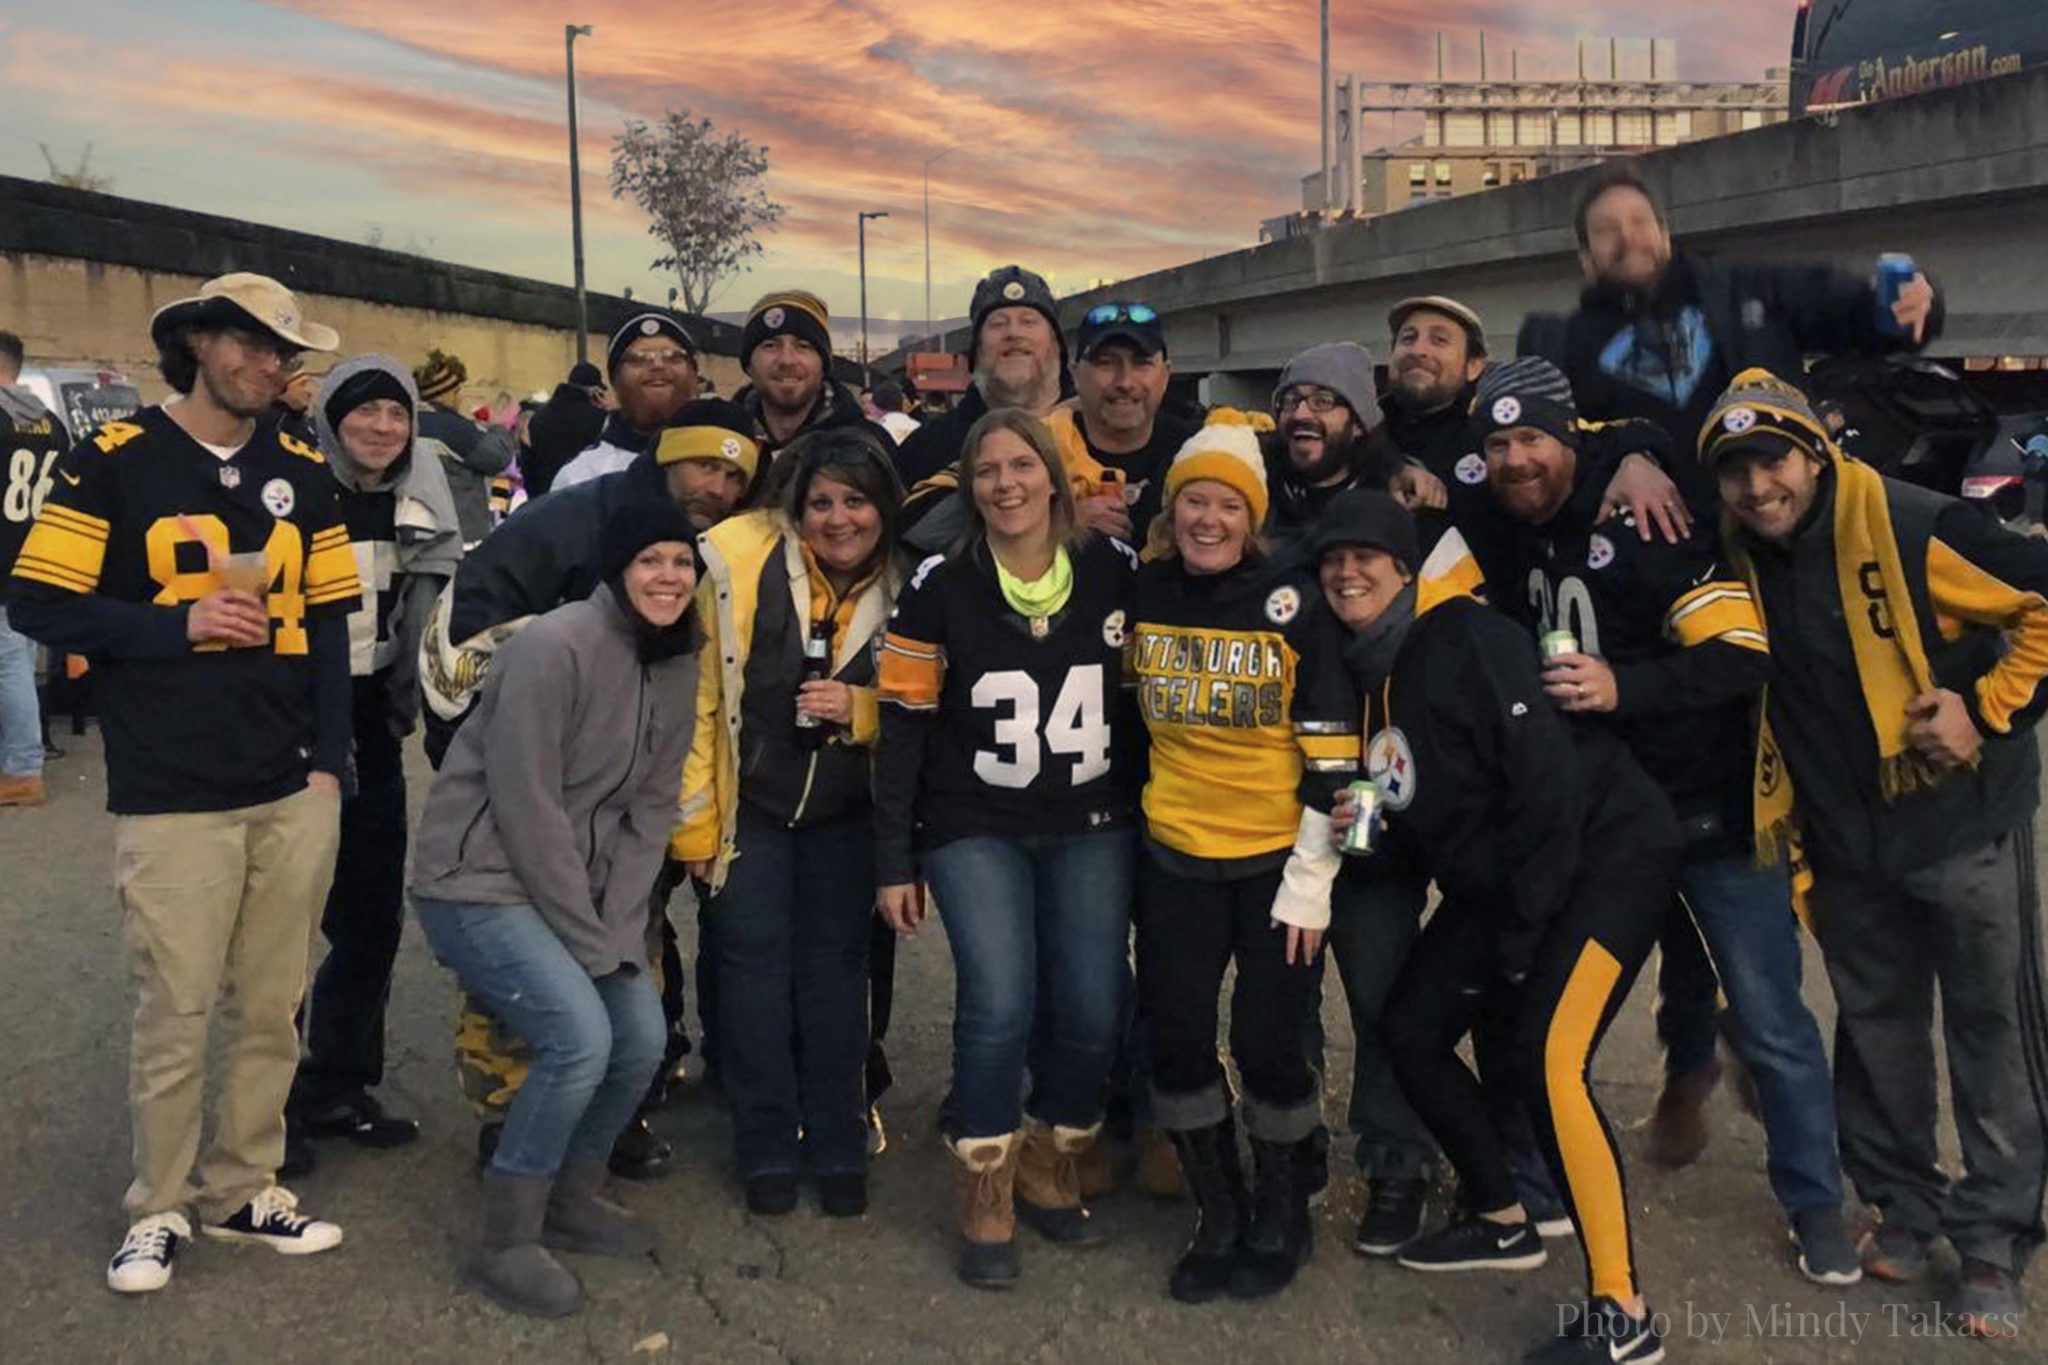 Tailgating party ideas for 2021